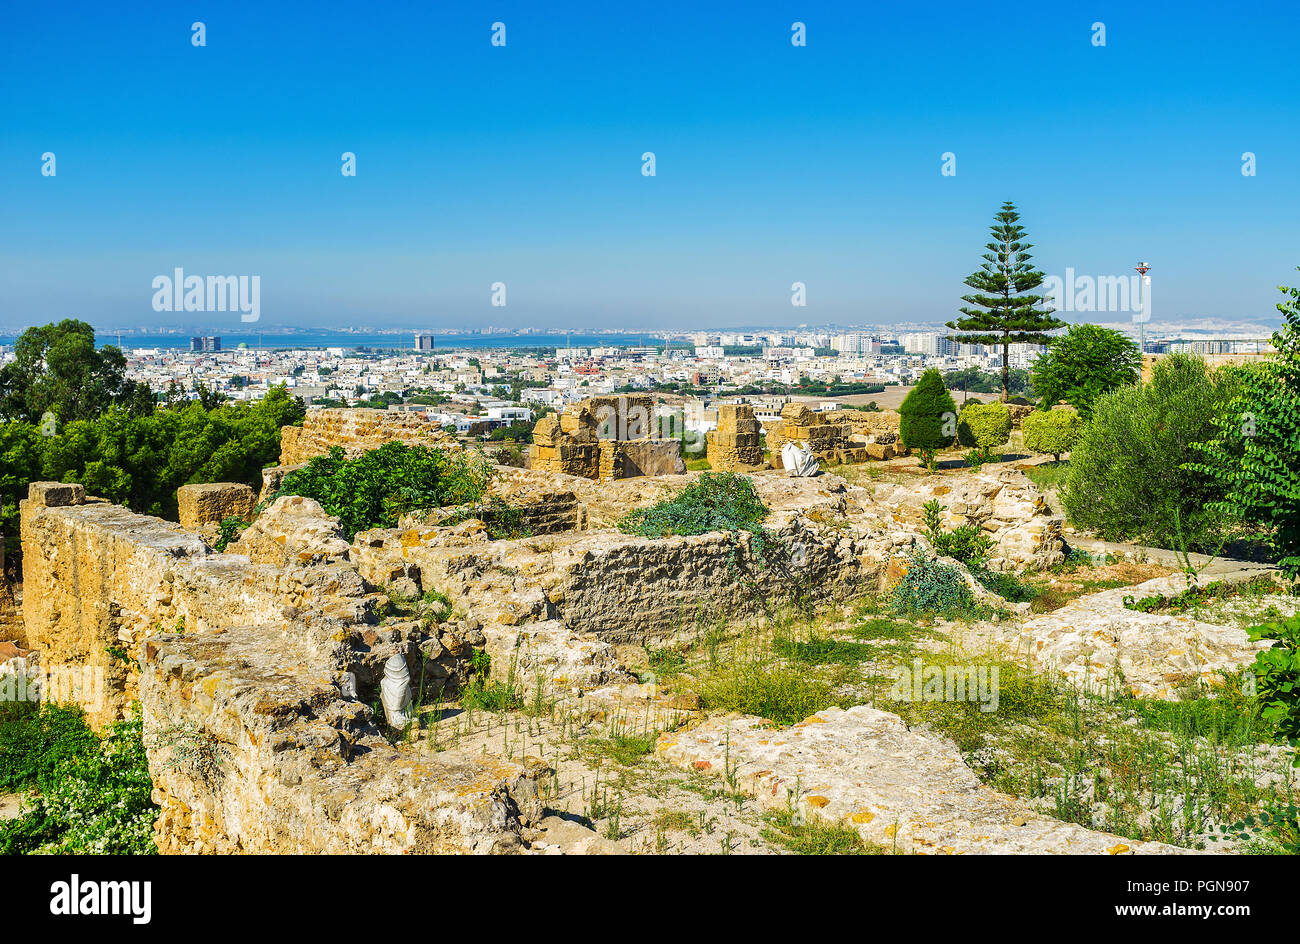 The Byrsa Hill, famous for ruins of ancient Carthage, boasts perfect viewpoints, overlooking the greenery, architecture and the coastline on backgroun - Stock Image